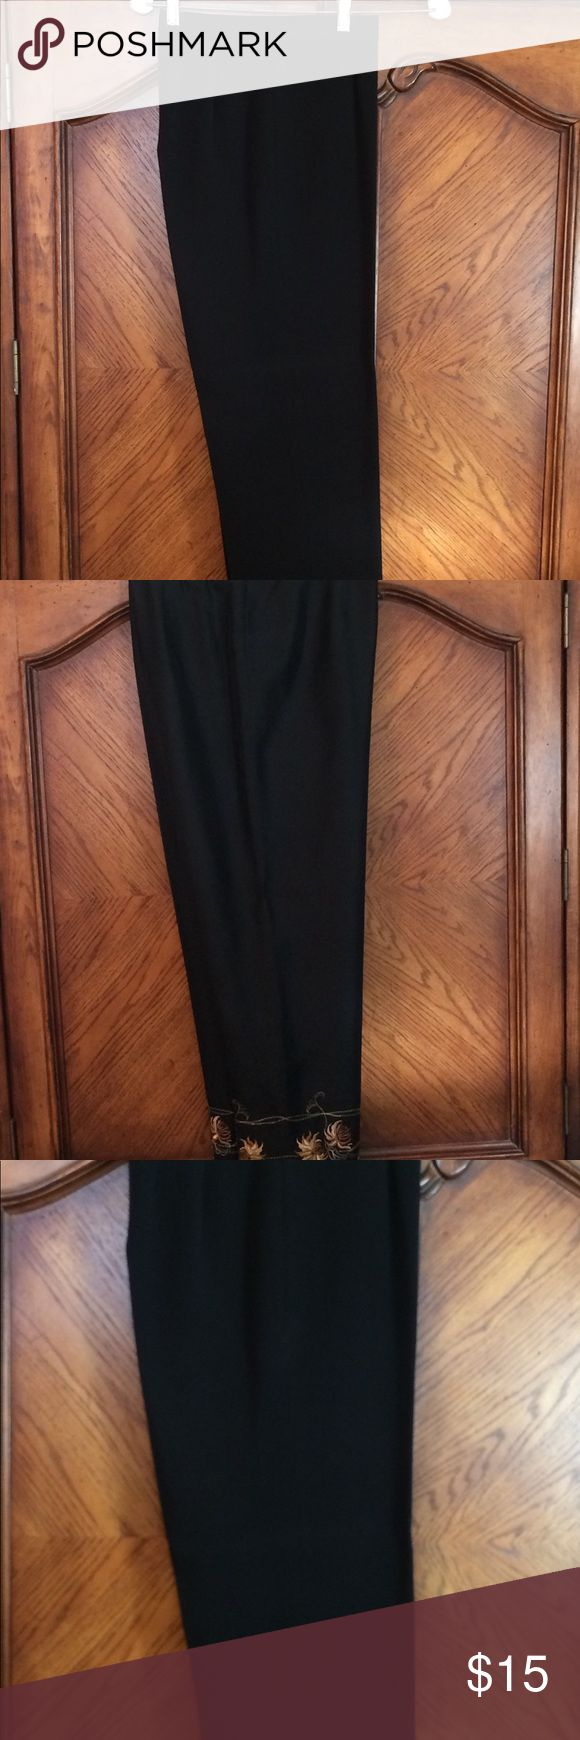 Women's size 8 slacks Rafaela size 8, black dress pants. These are great for the office or a nice evening out Rafaella Pants Trousers